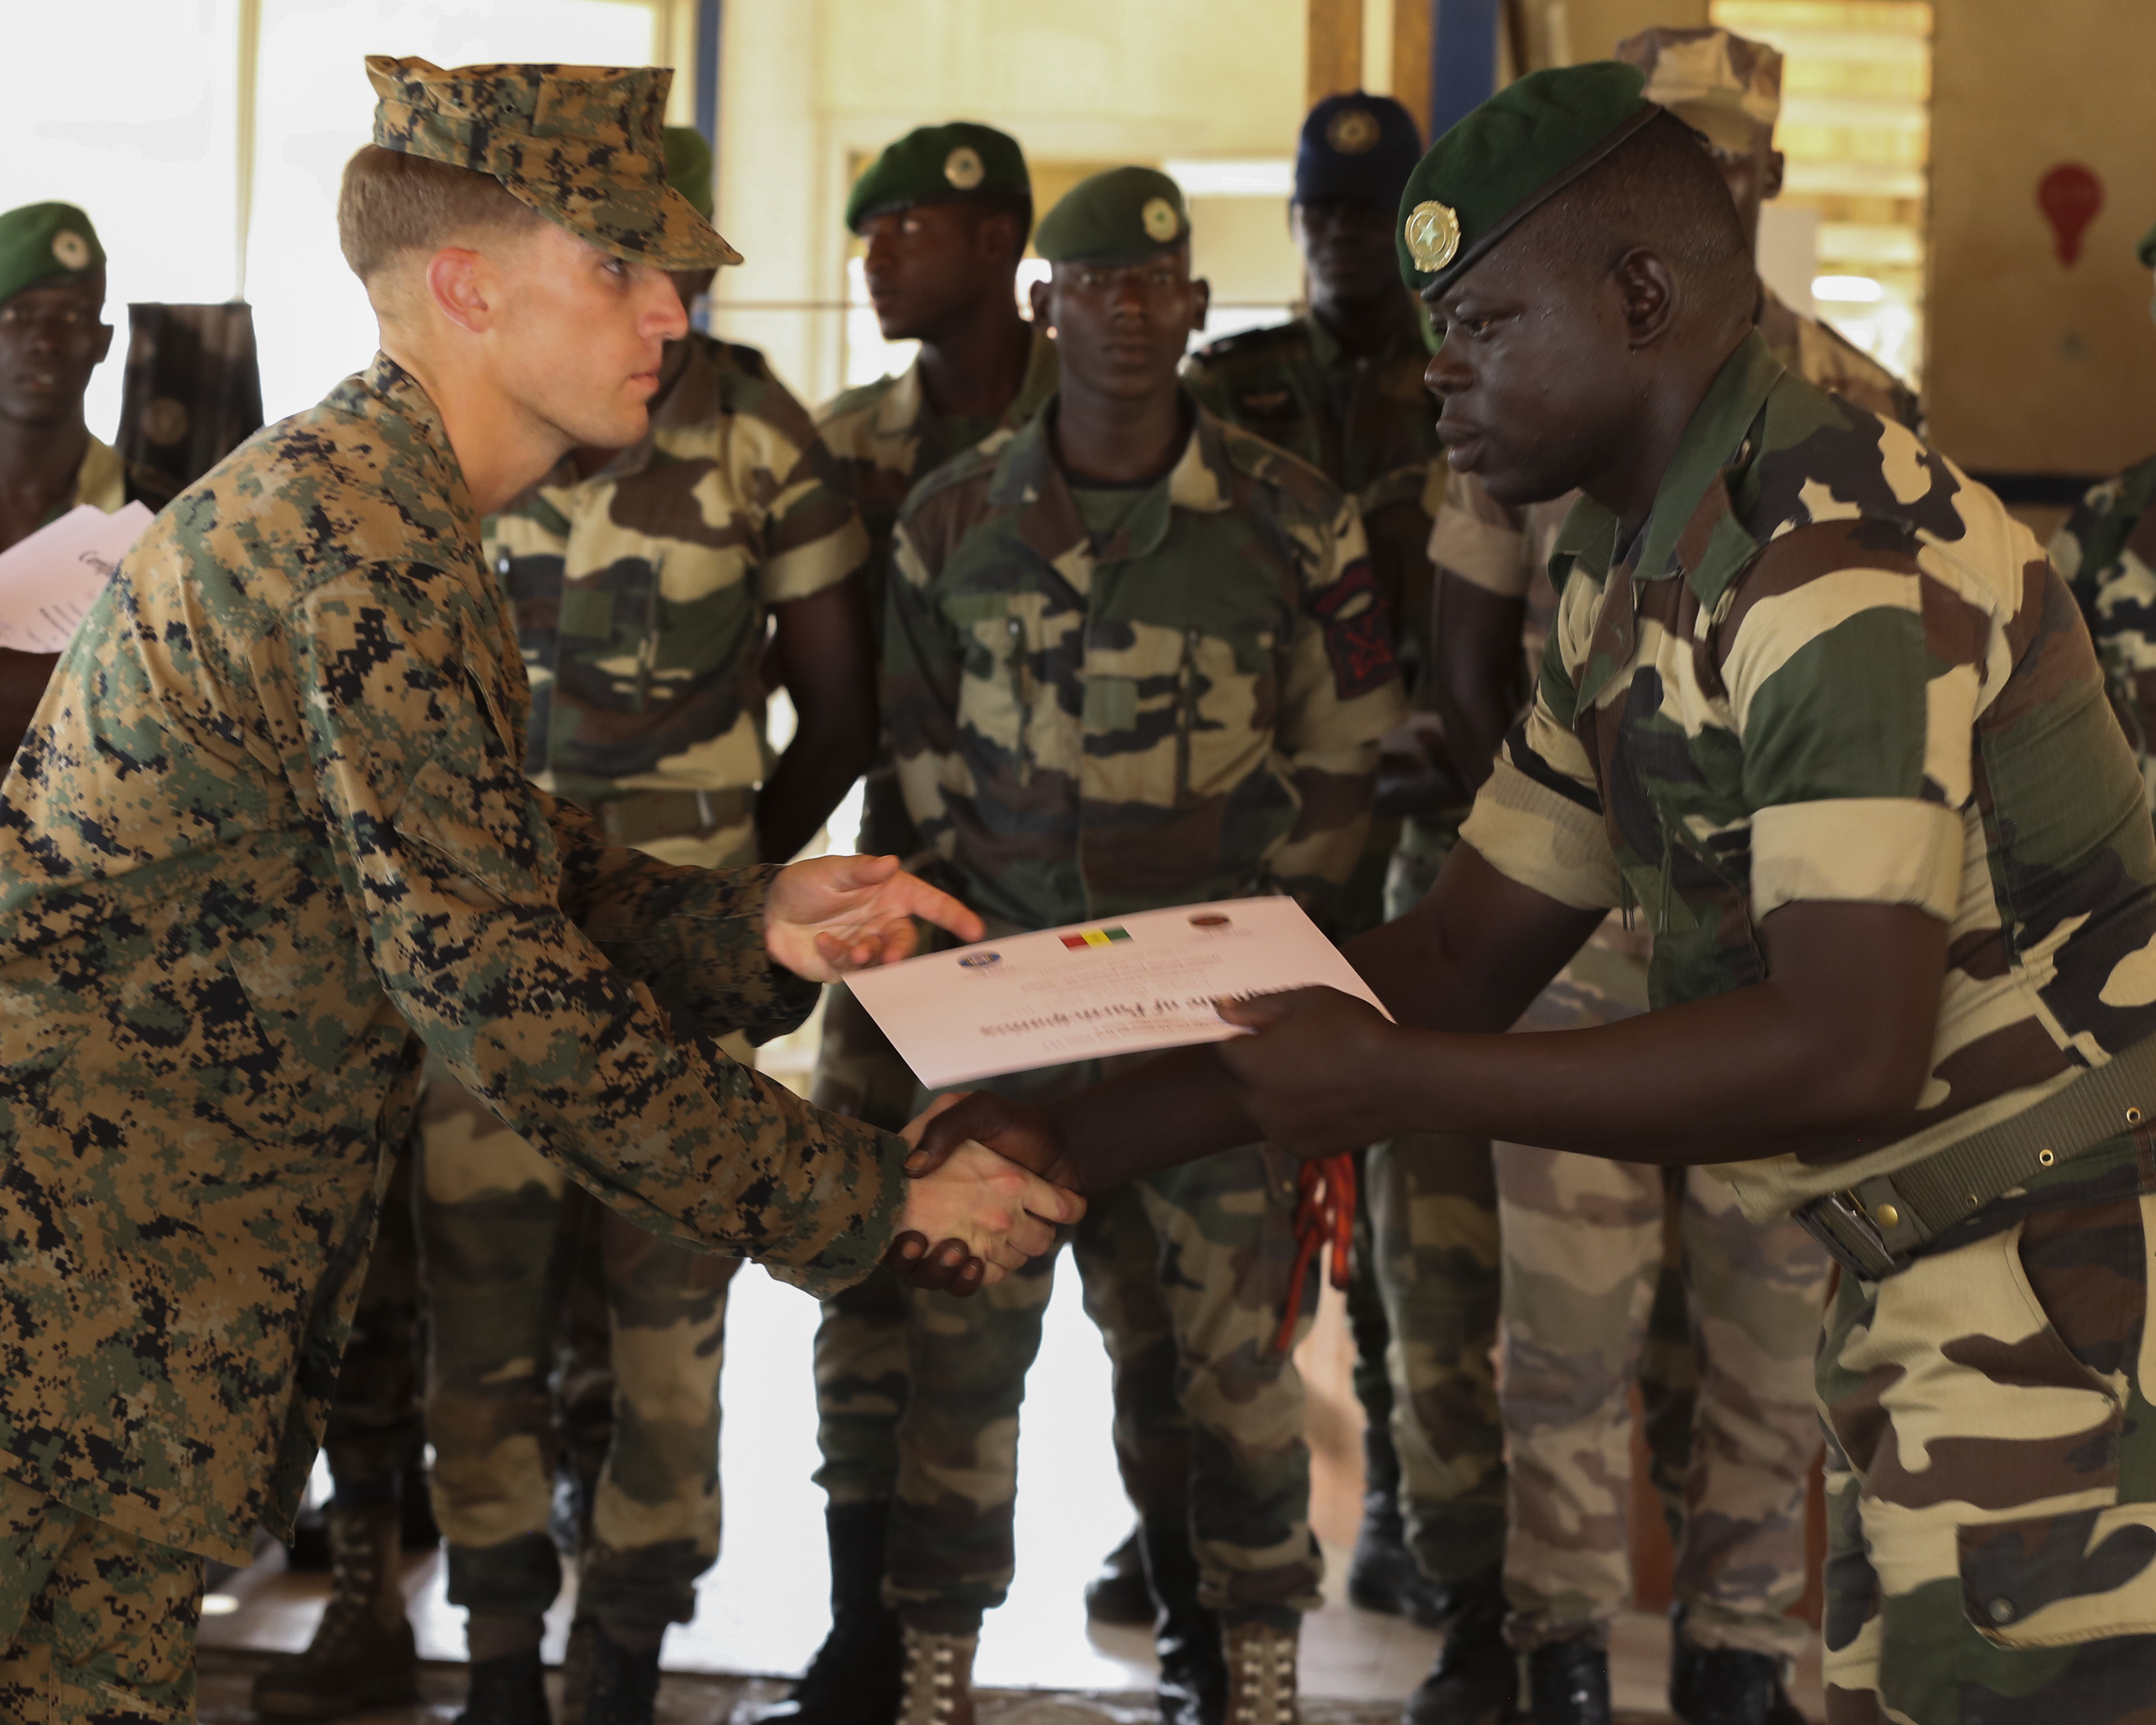 Second Lt. Aaron Burtner, security cooperation team leader, congratulates a Compagnie Fusilier de Marin Commando during his graduation ceremony after completing the final exercise with U.S. service members in Dakar, Senegal, September 17, 2015. The Marines and Coast Guardsmen with Special-Purpose Marine Air-Ground Task Force Crisis Response-Africa spent four weeks training the COFUMACO on basic infantry tactics and small-boat operations as a part of a Maritime Security Force Assistance mission to increase interoperability with Senegal's and strengthen the bond between the partner nations. (U.S. Marine Corps photo by Cpl. Olivia McDonald/Released)